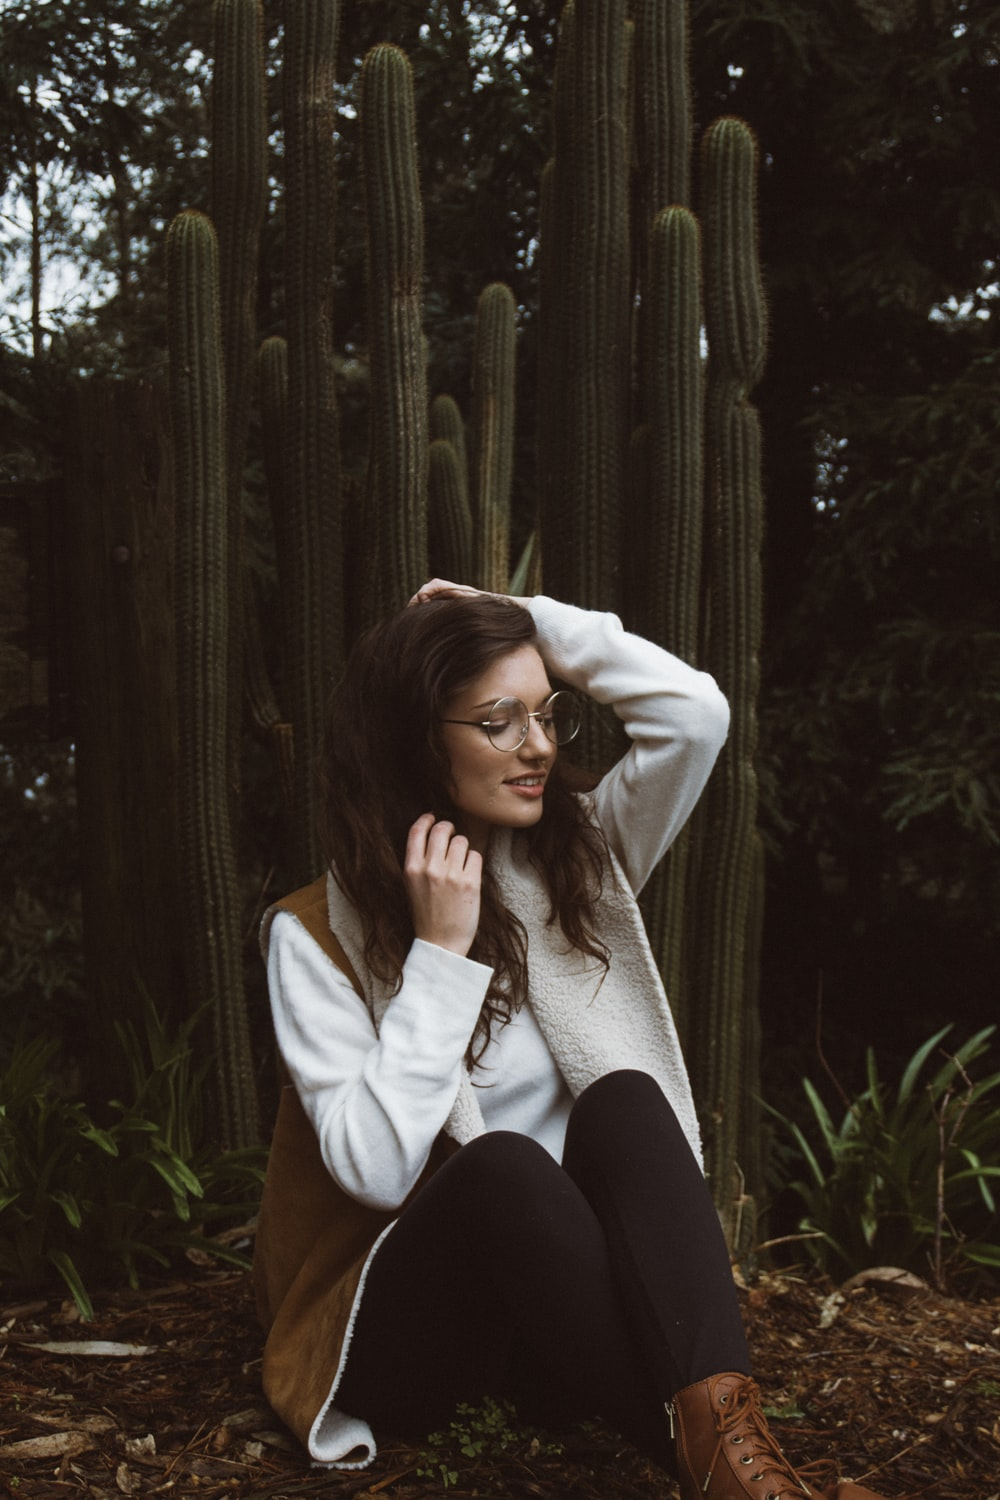 smiling woman wearing brown and white coat sitting beside green cacti plants